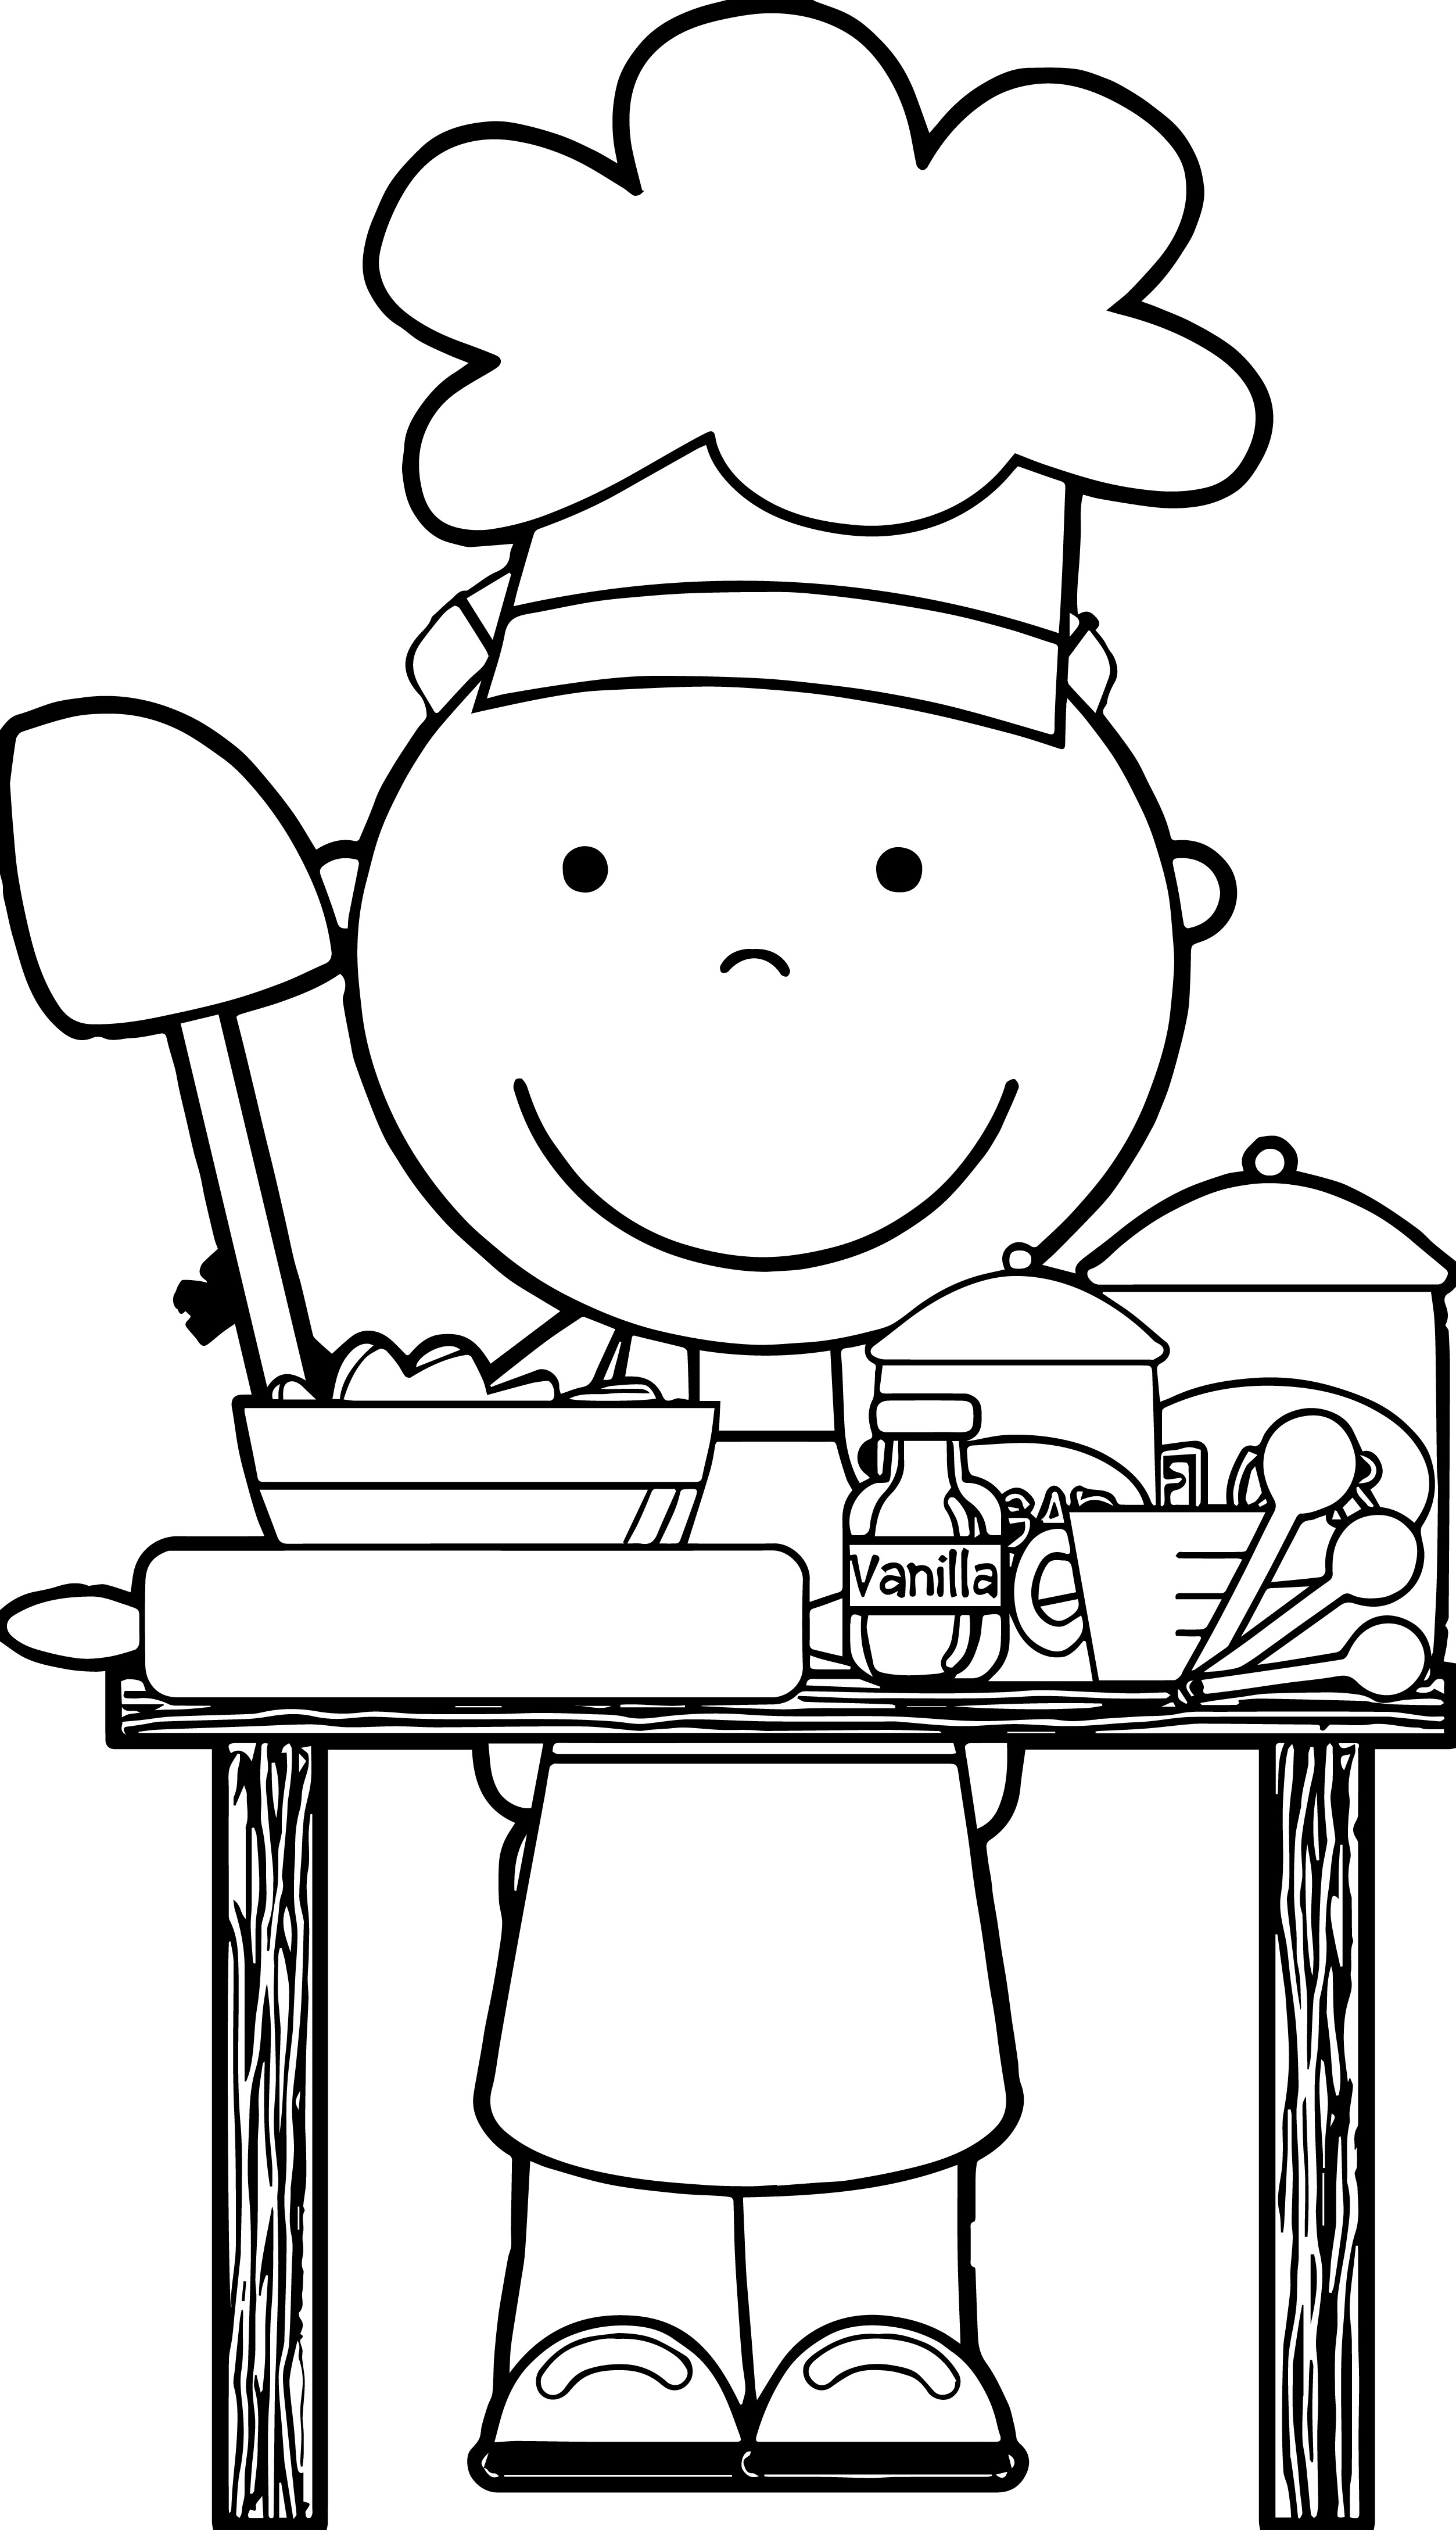 Coloring pages kitchen